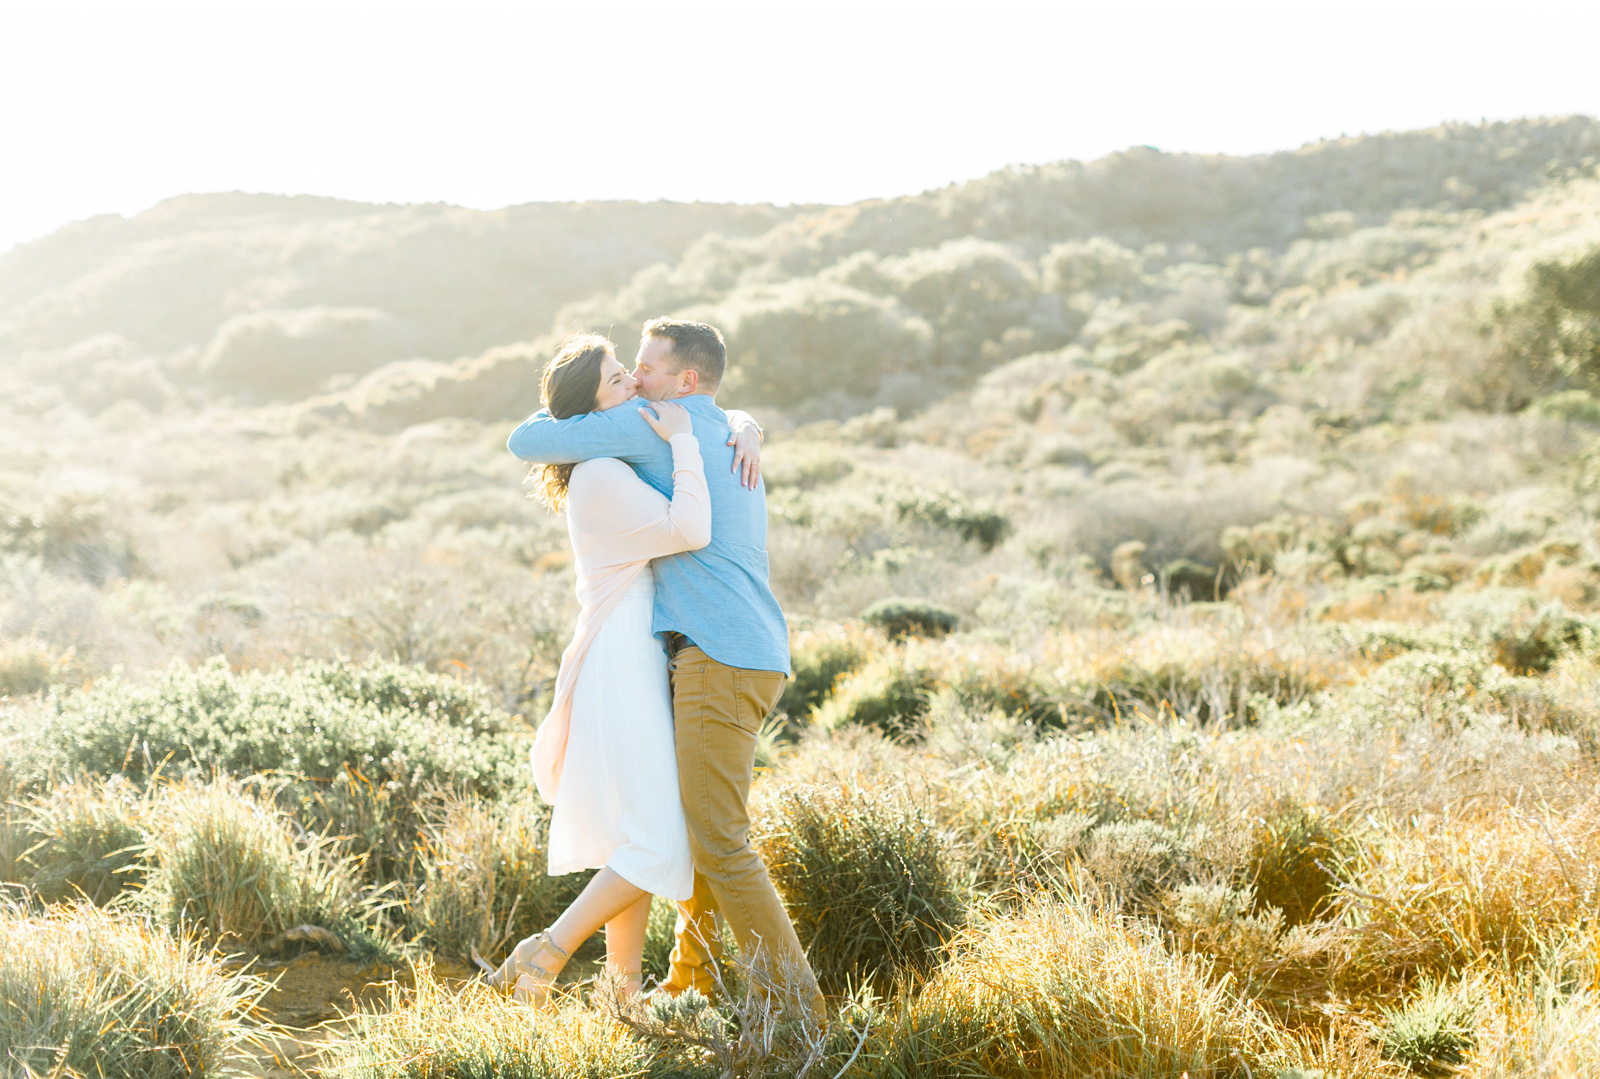 Professional-Wedding-Photographer-Southern-California-Weddings-Malibu-Engagement-Natalie-Schutt-Photography-Style-Me-Pretty-Beachside-Engagement_03.jpg